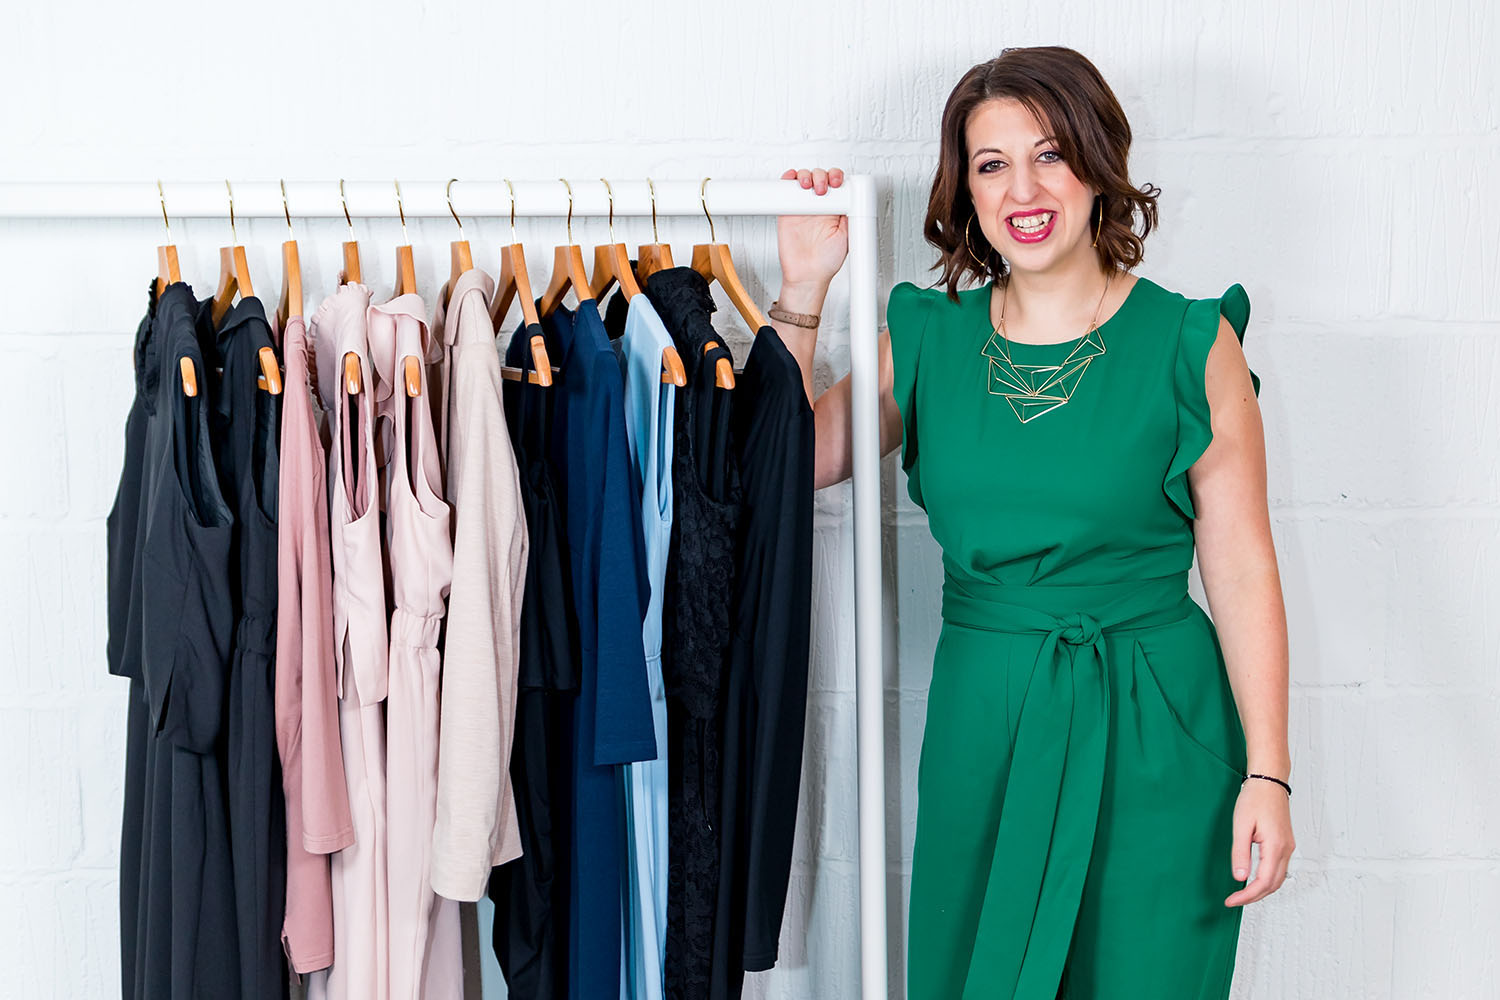 Meet Claire Morris | Retail With Clarity